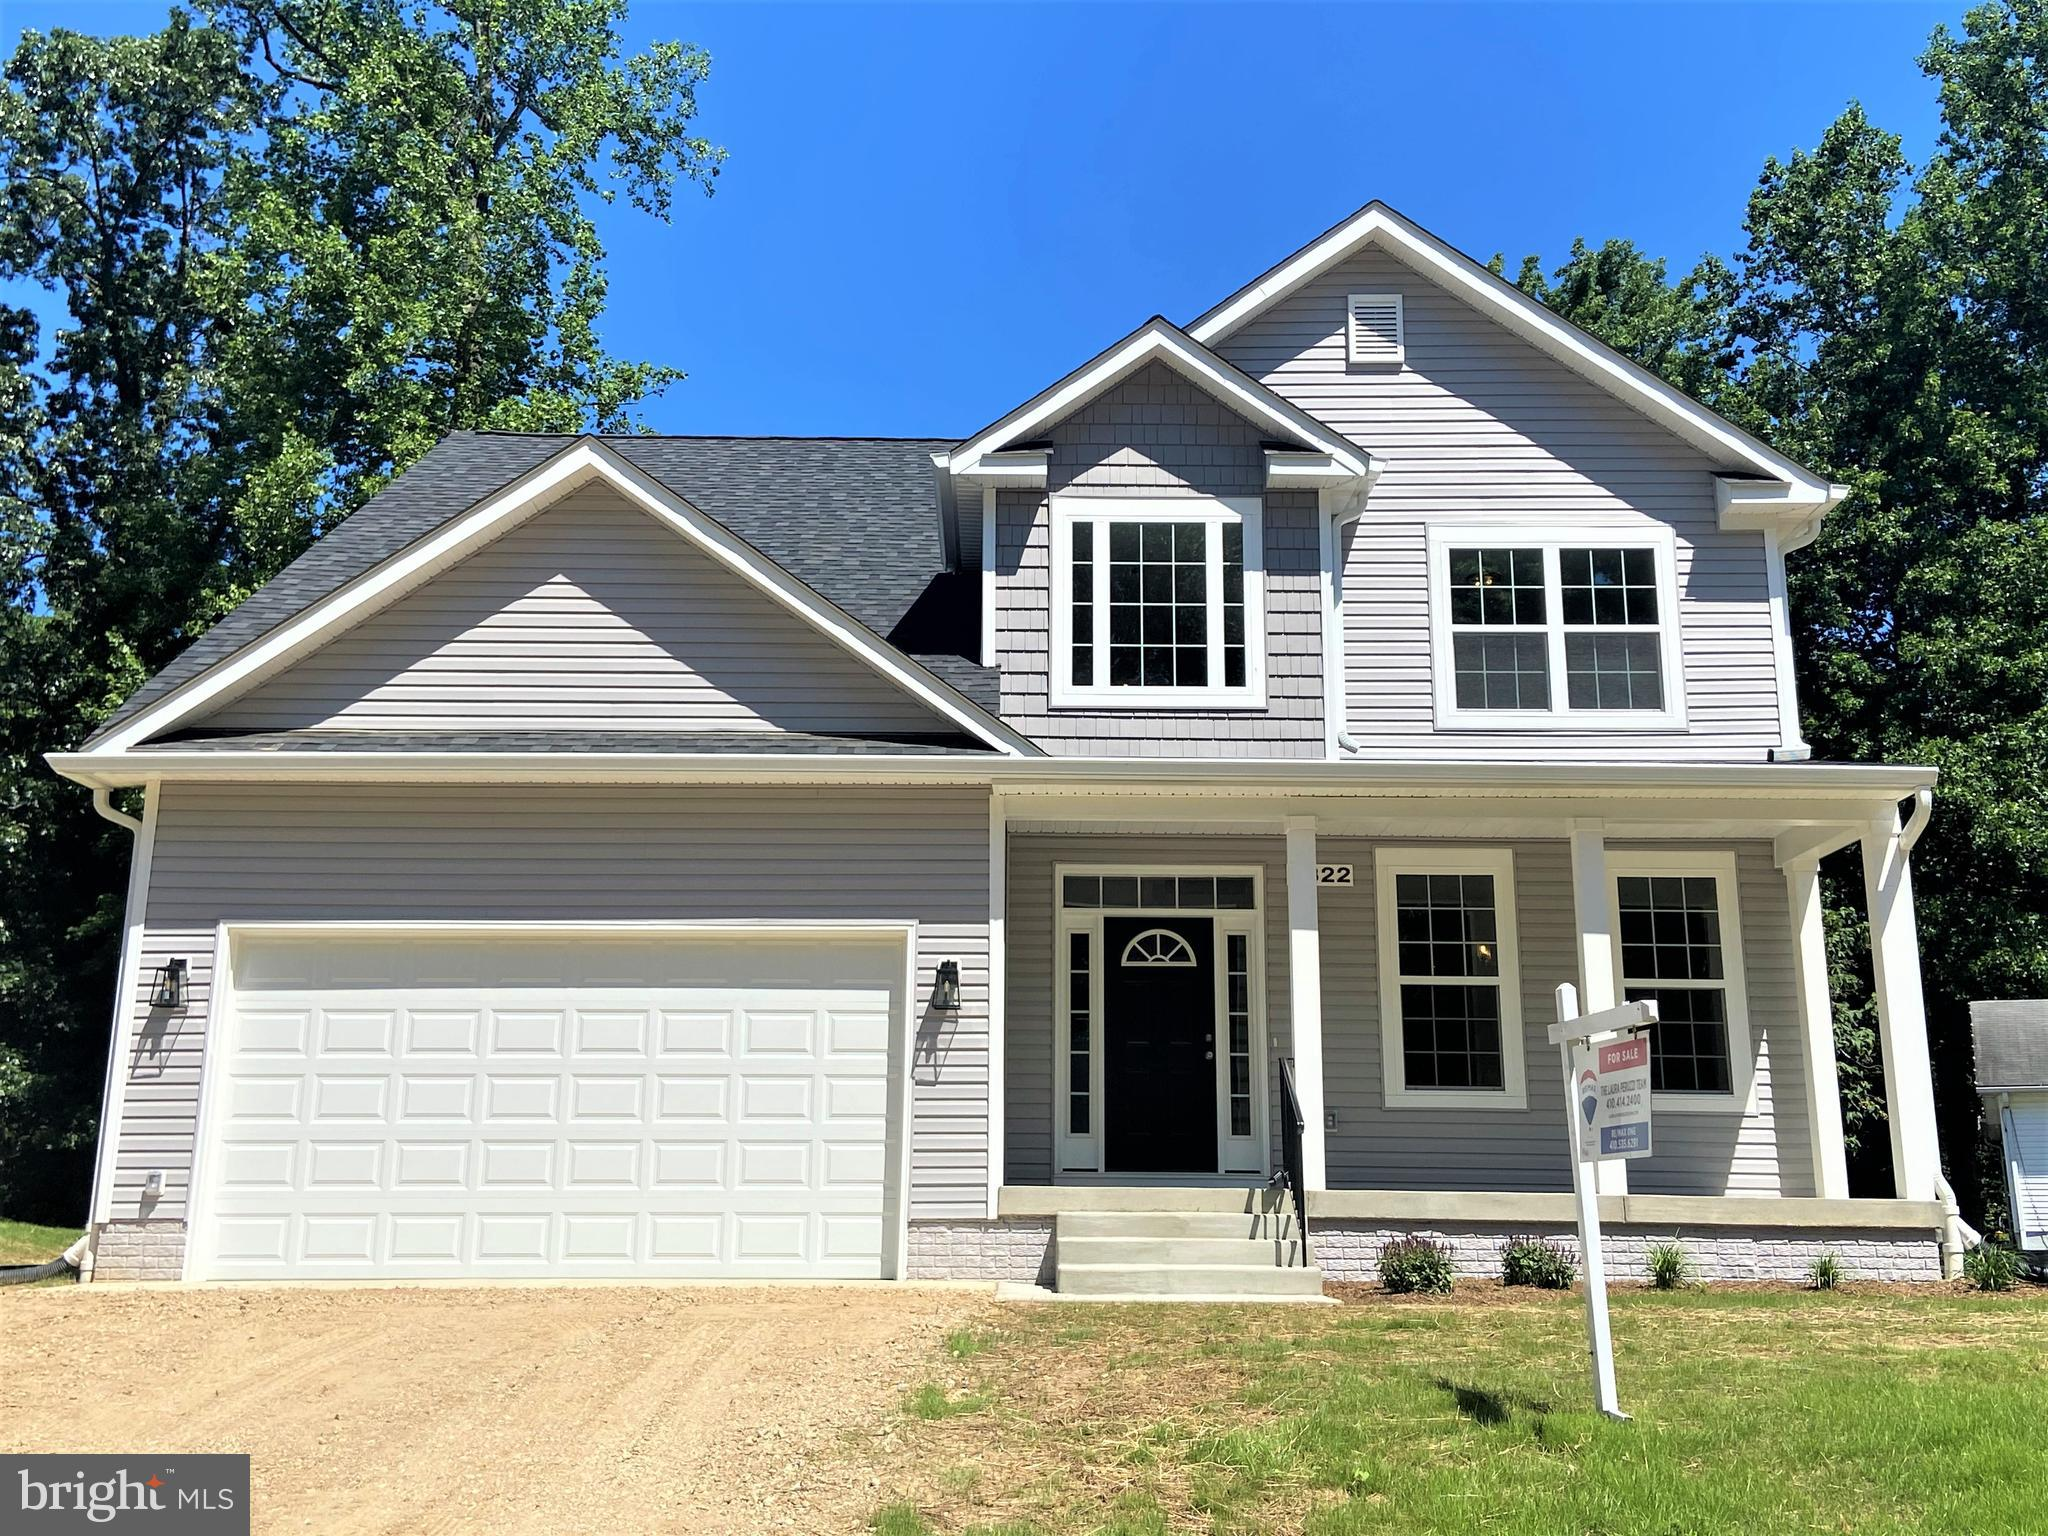 This newly constructed colonial has all of today's most sought after amenities! The open two story f